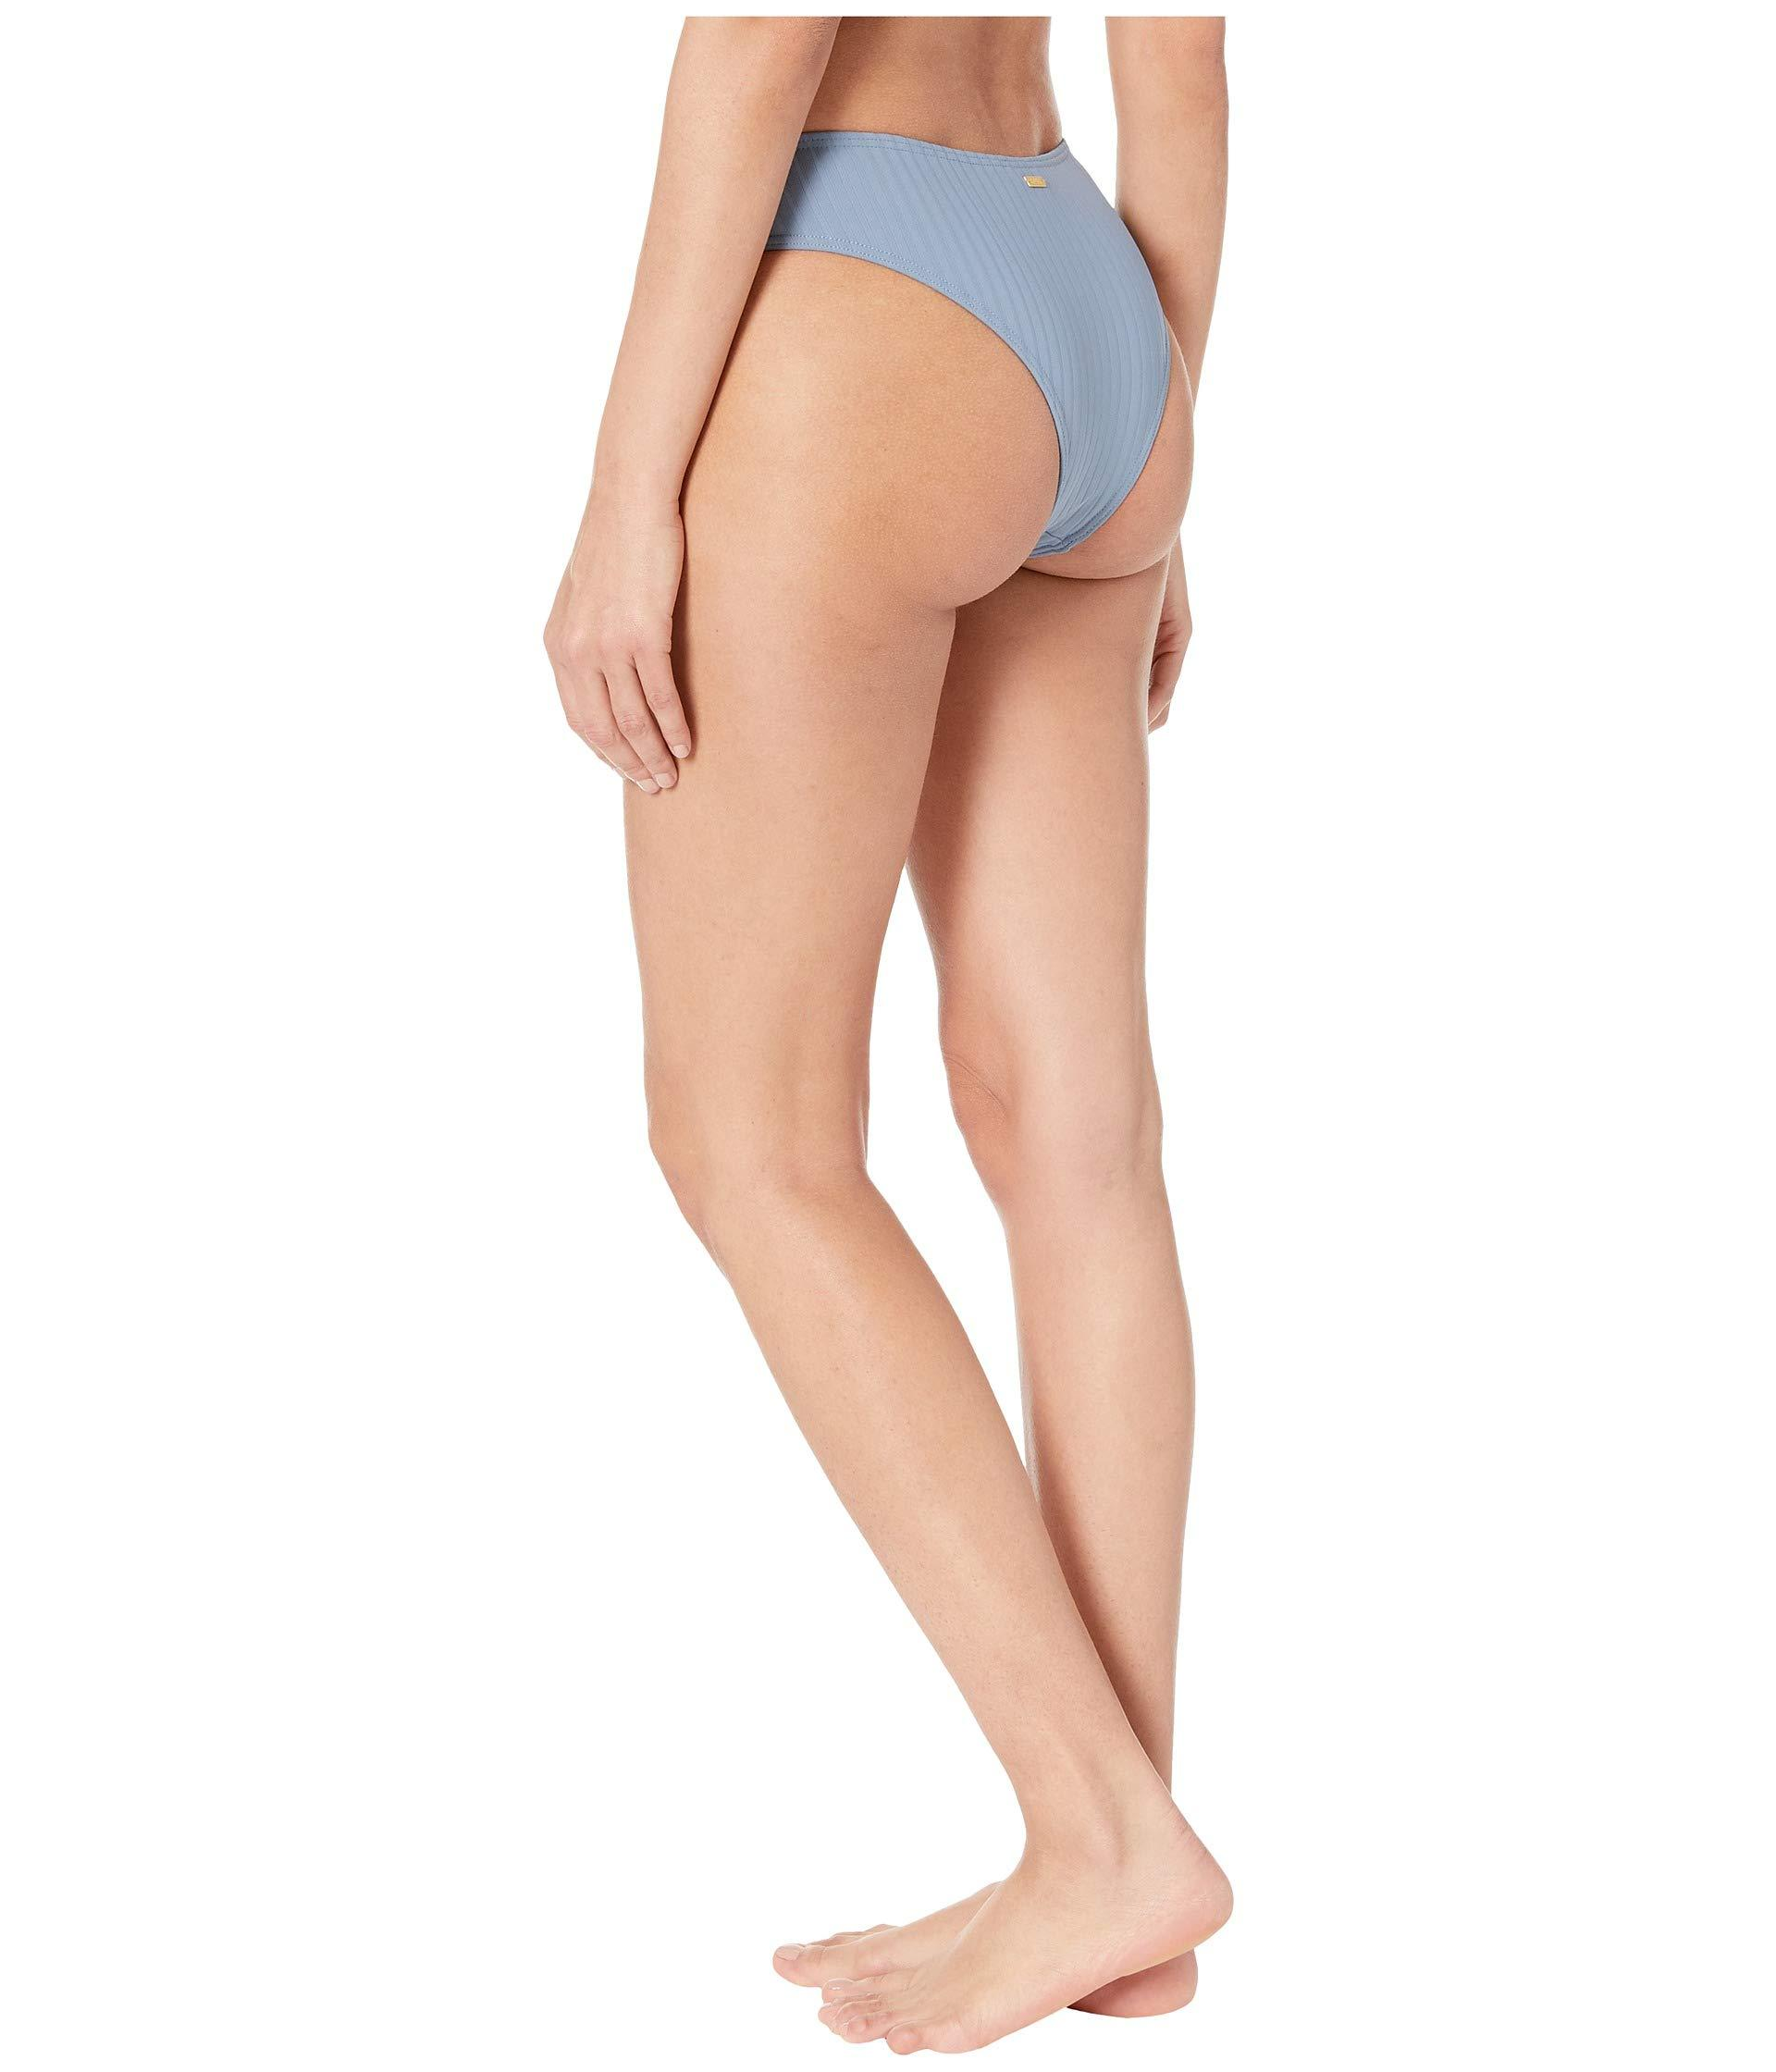 80e1e159fb3 Lyst - Roxy Color My Life Moderate High Leg Swimsuit Bottoms (blue ...